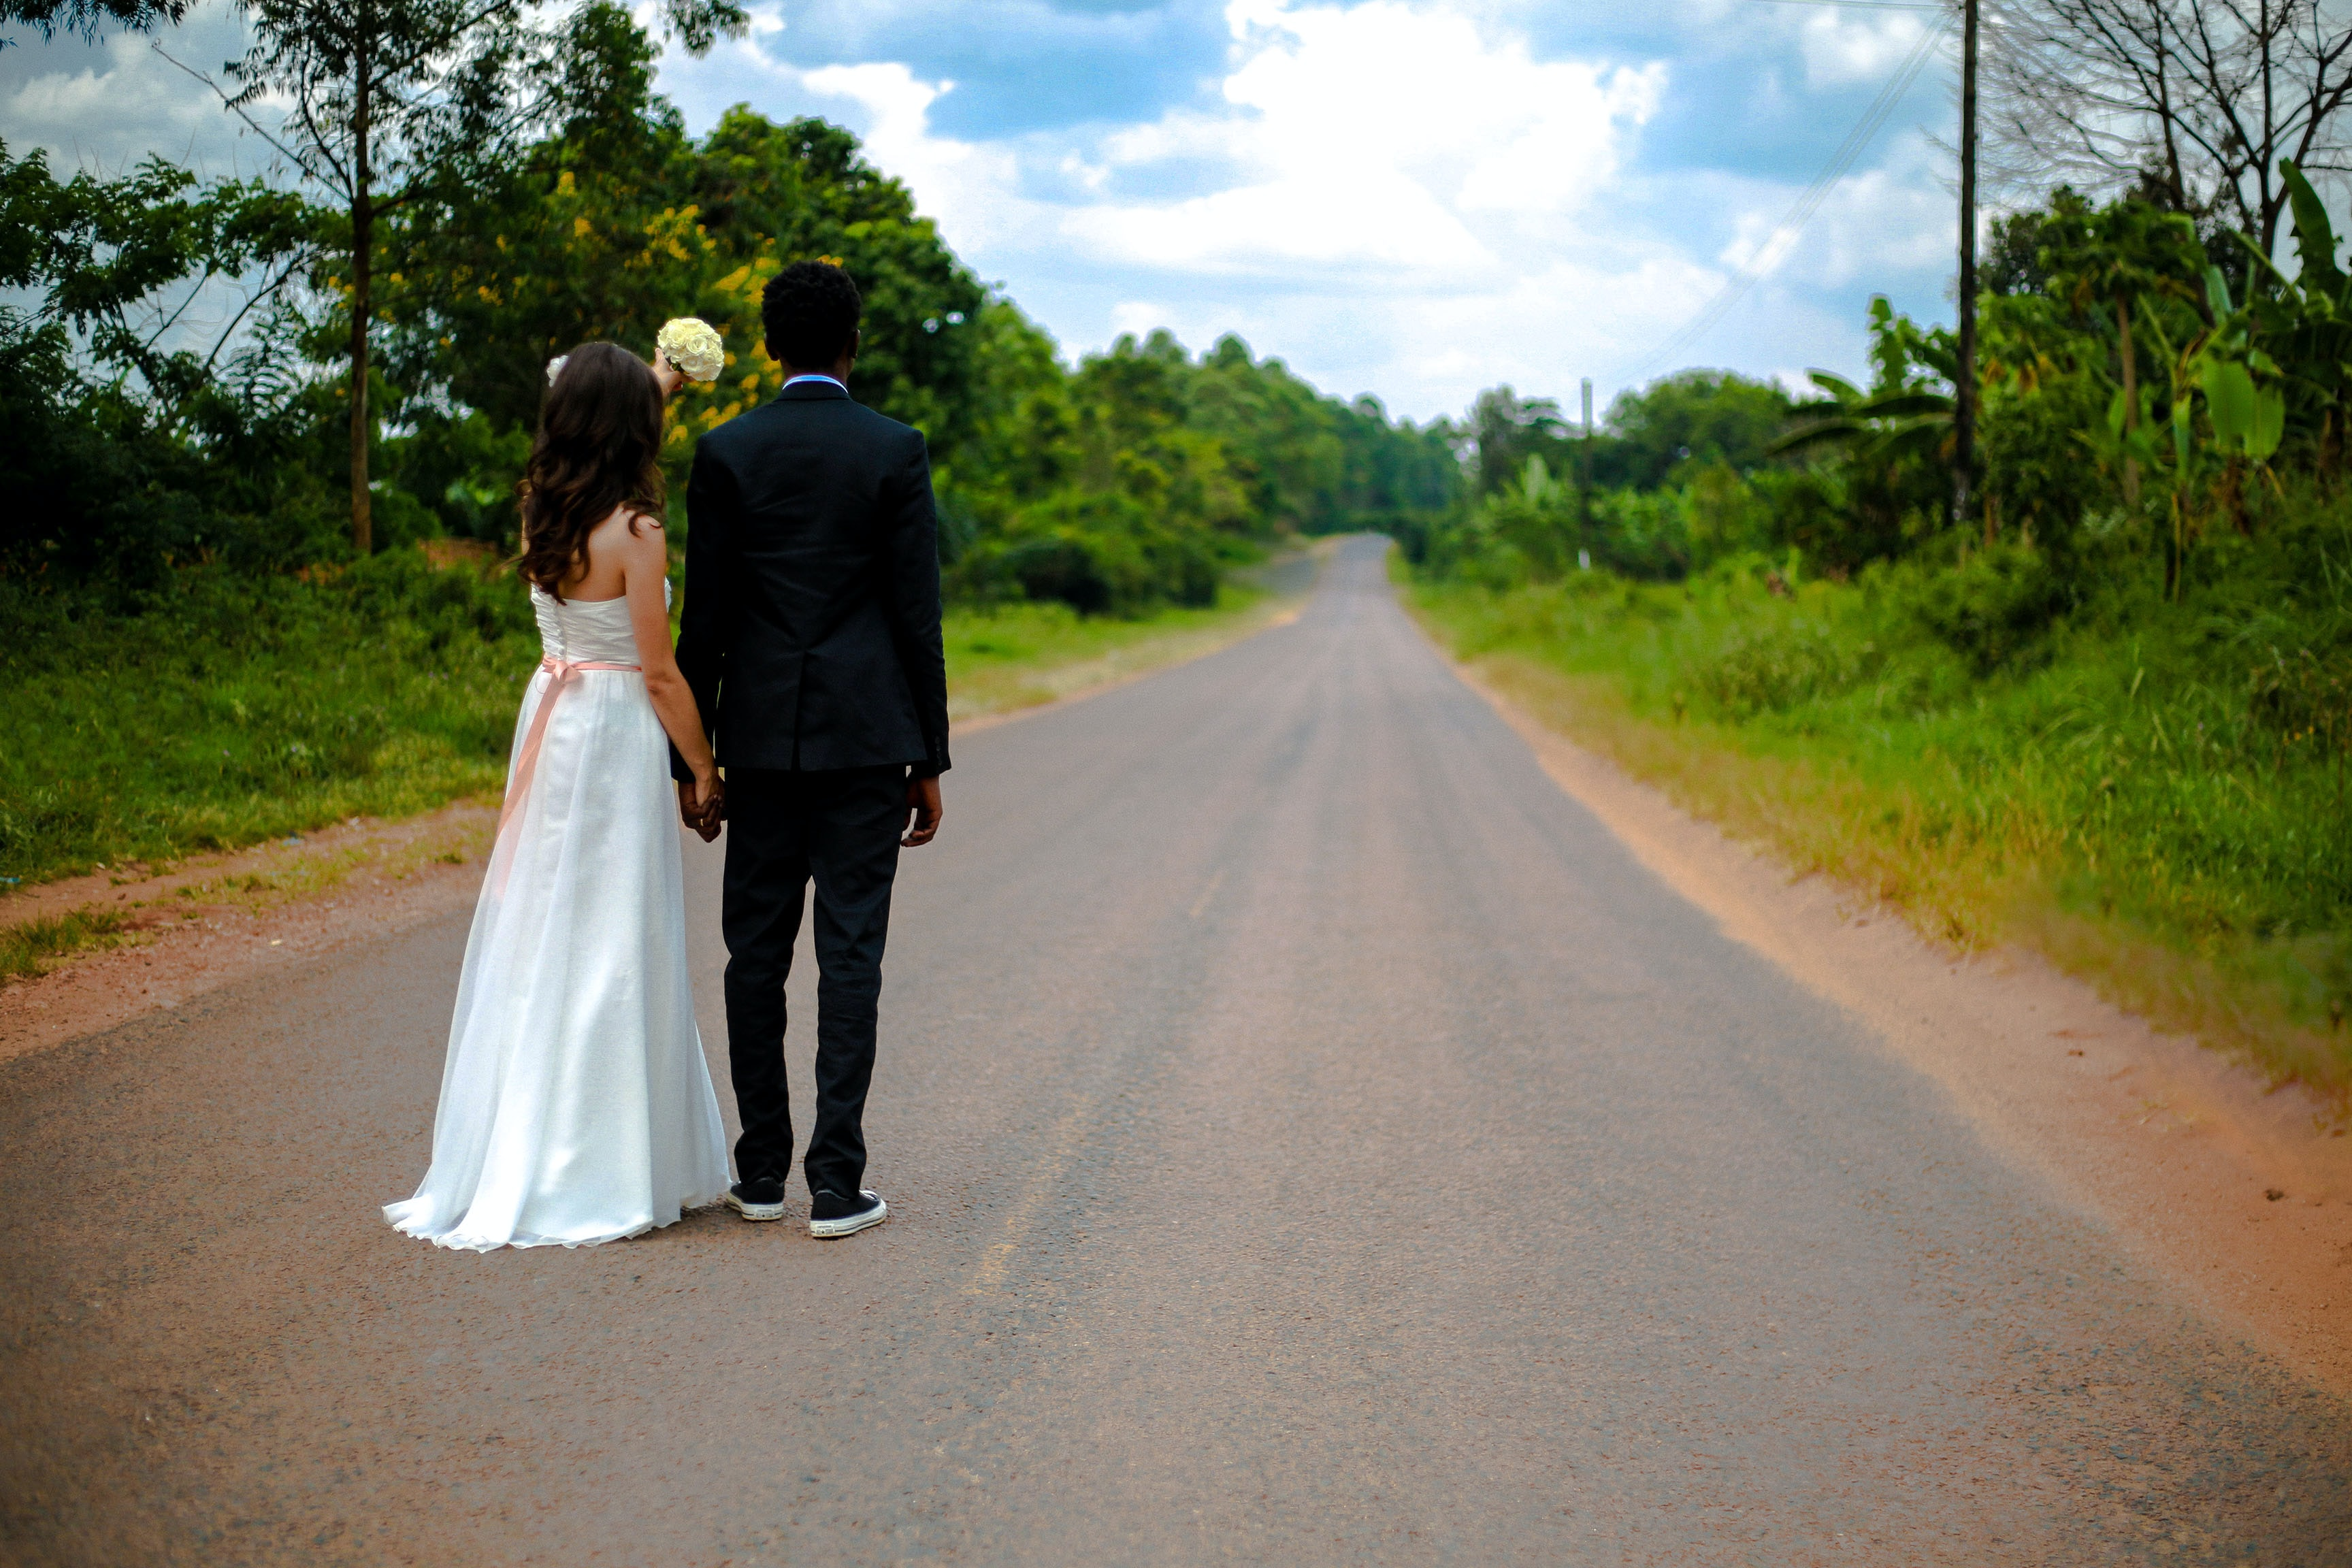 Bride and groom hold hands on a rural road on a sunny day in Mukono